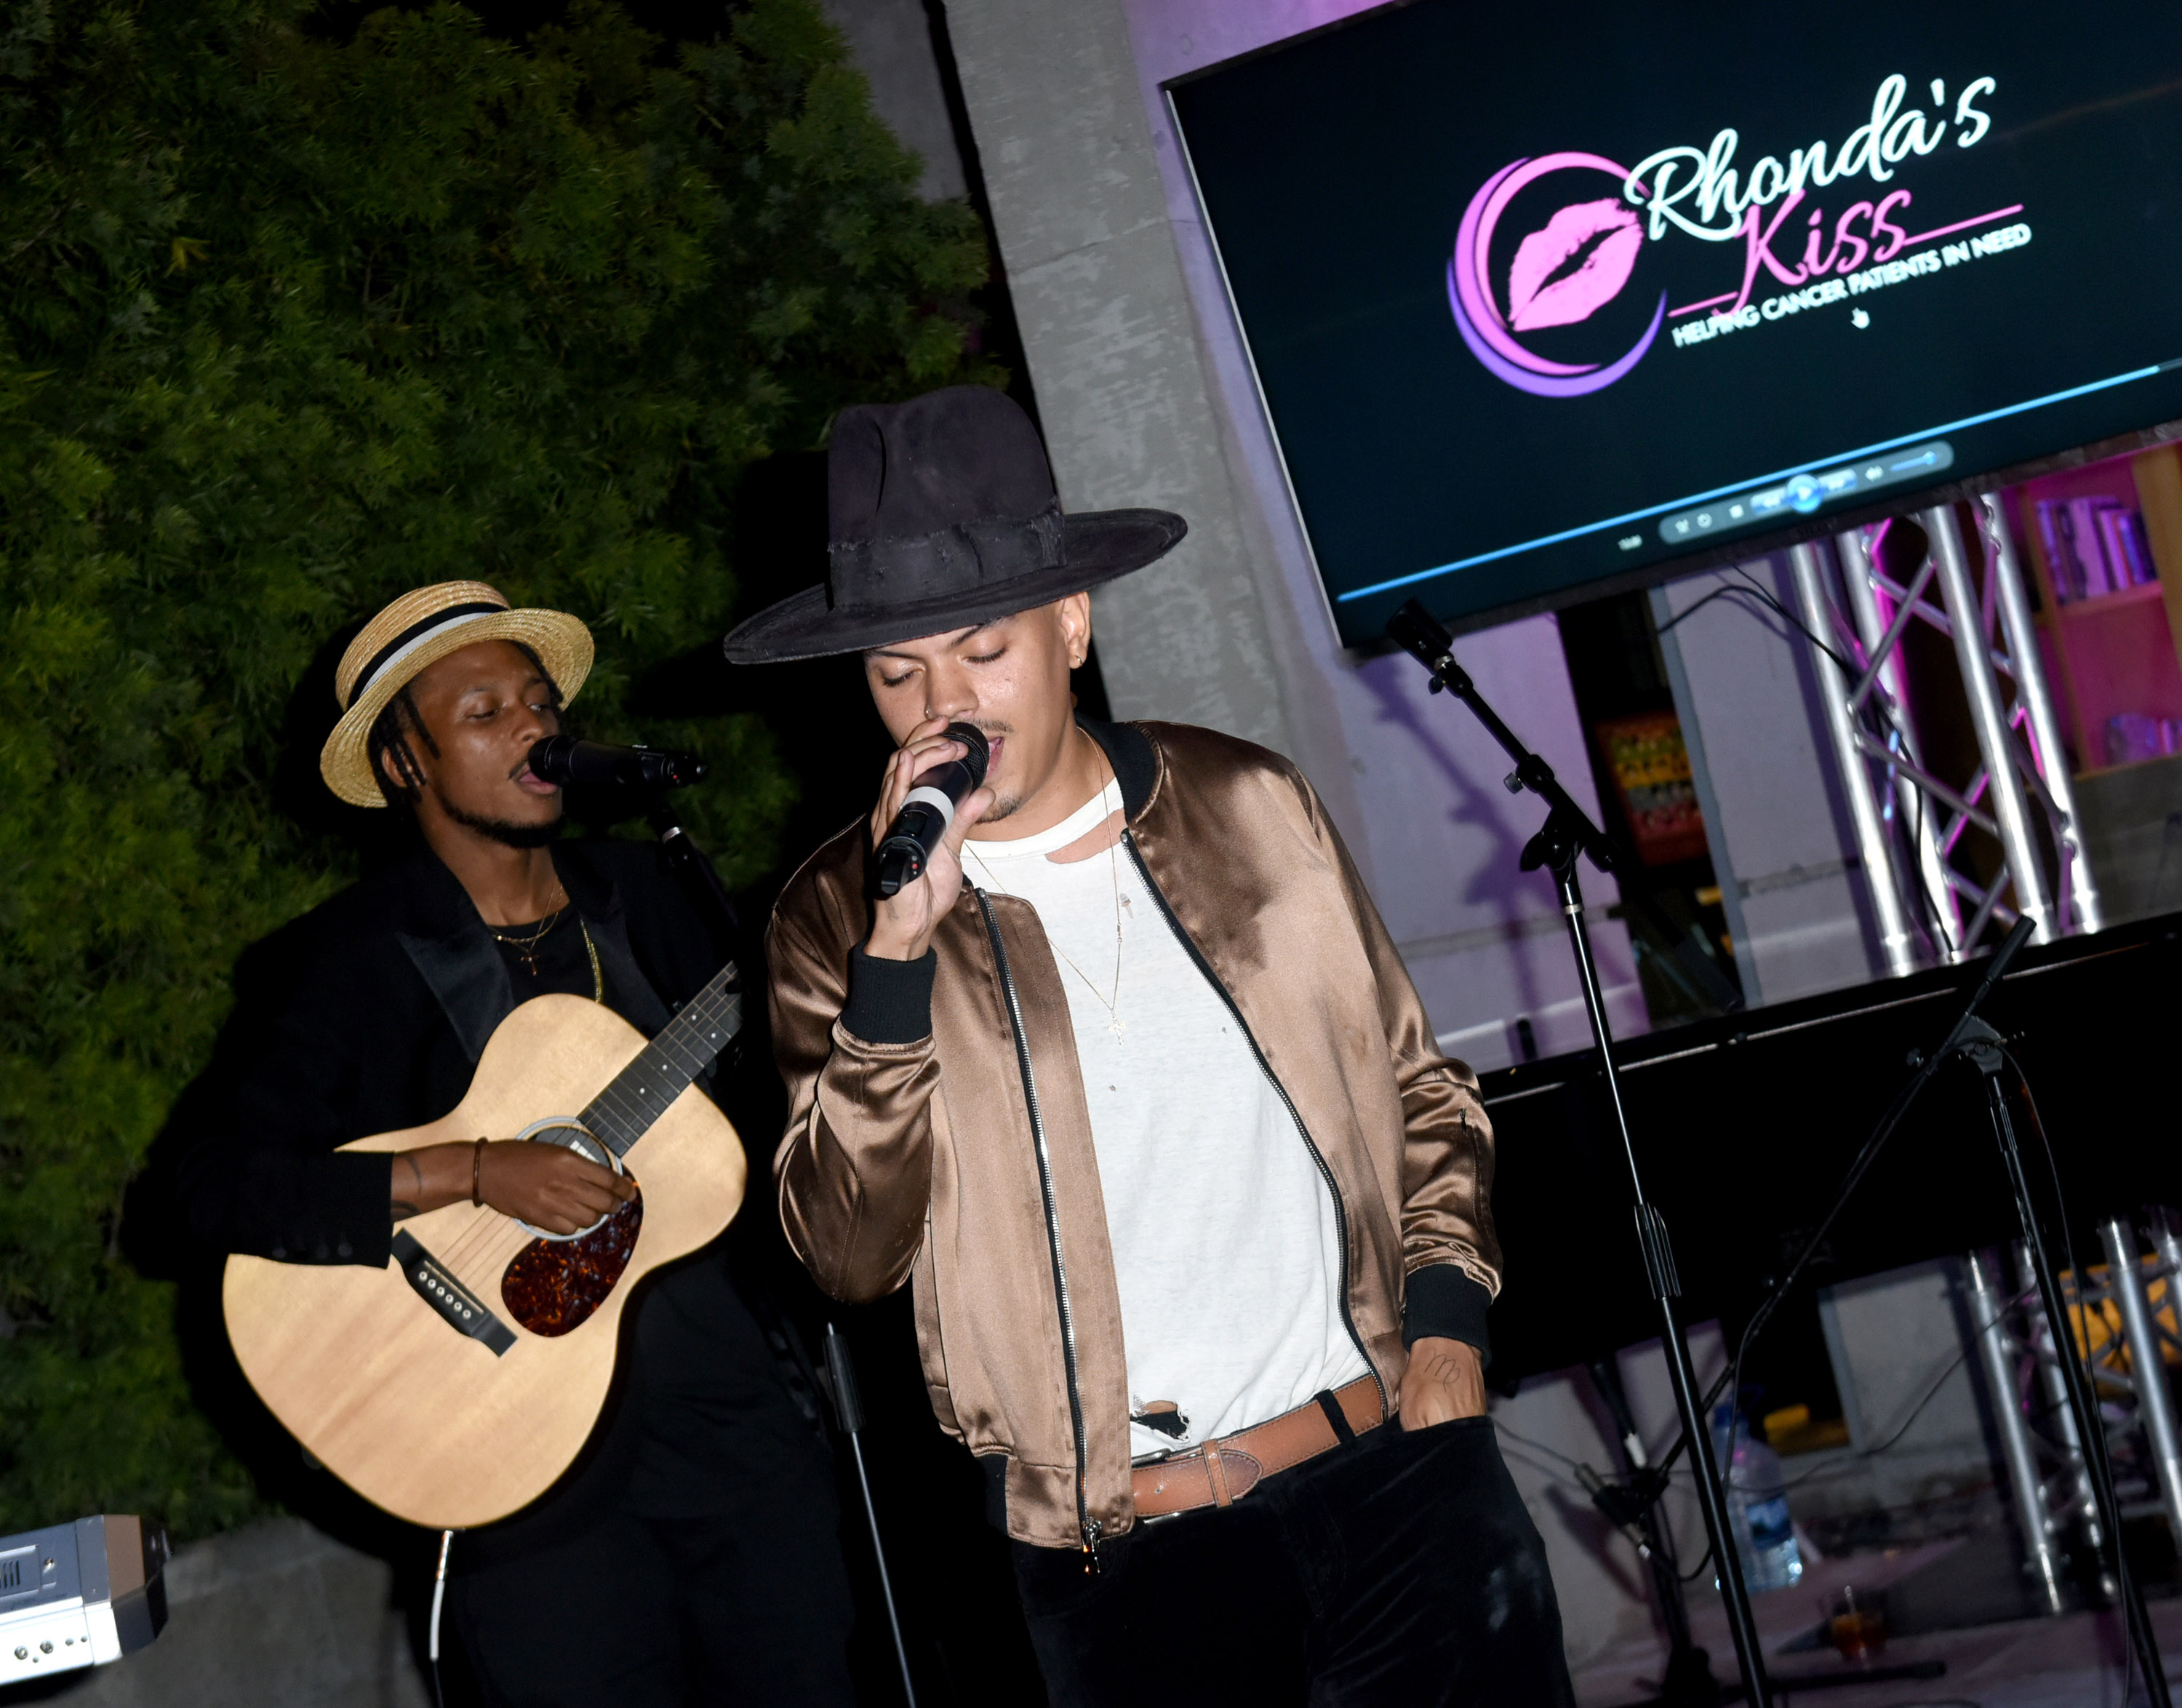 "Evan Ross and Ashlee Simpson Ross support Rhonda's Kiss Fundraising Dinner ""Kiss The Star"""